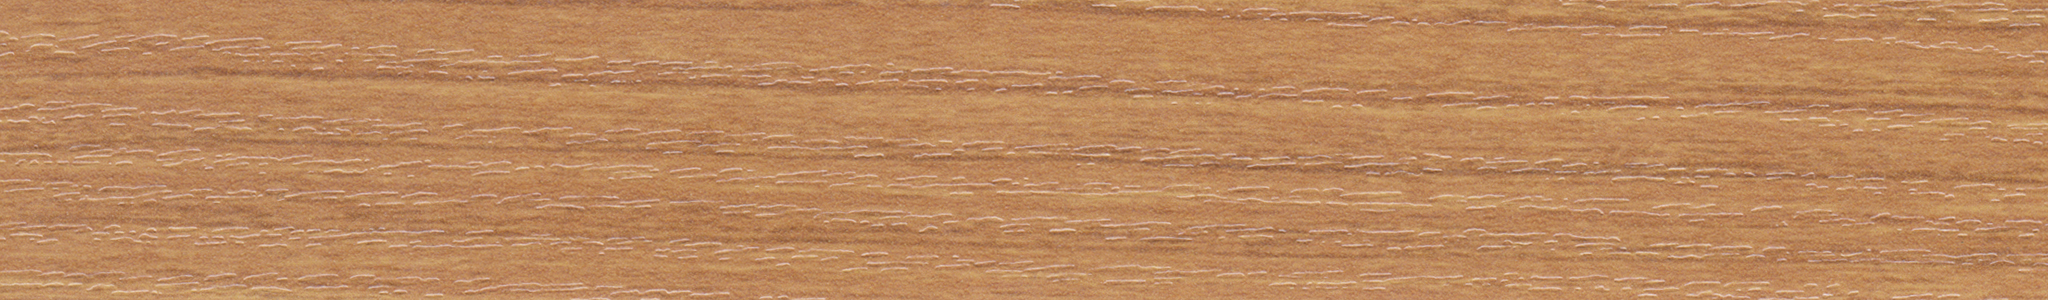 HD 42344 Melamine Edge Cherry Pore